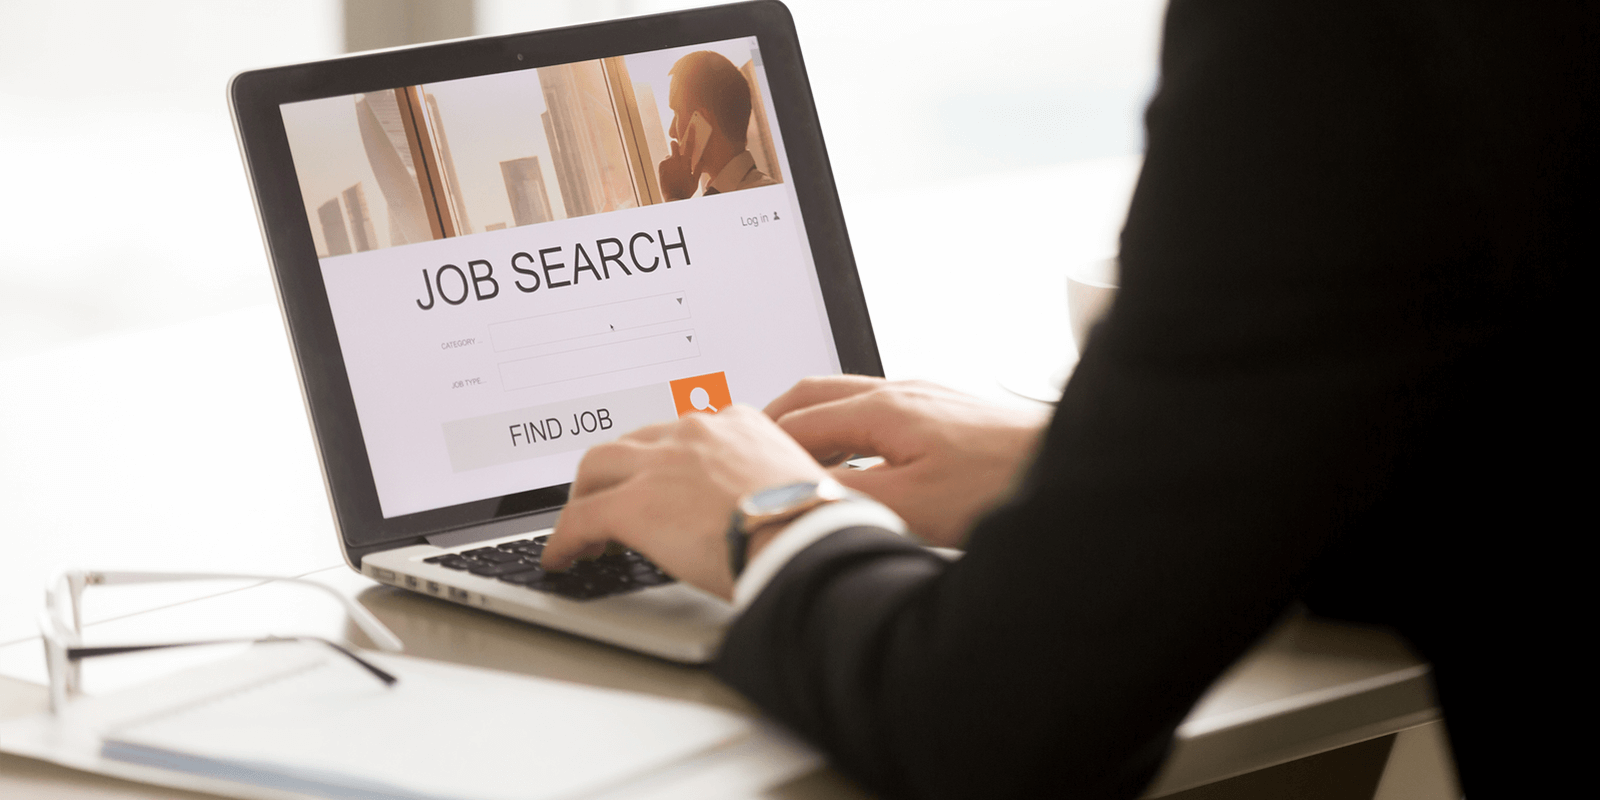 Job Search during pandemic – The WHATs and HOWs